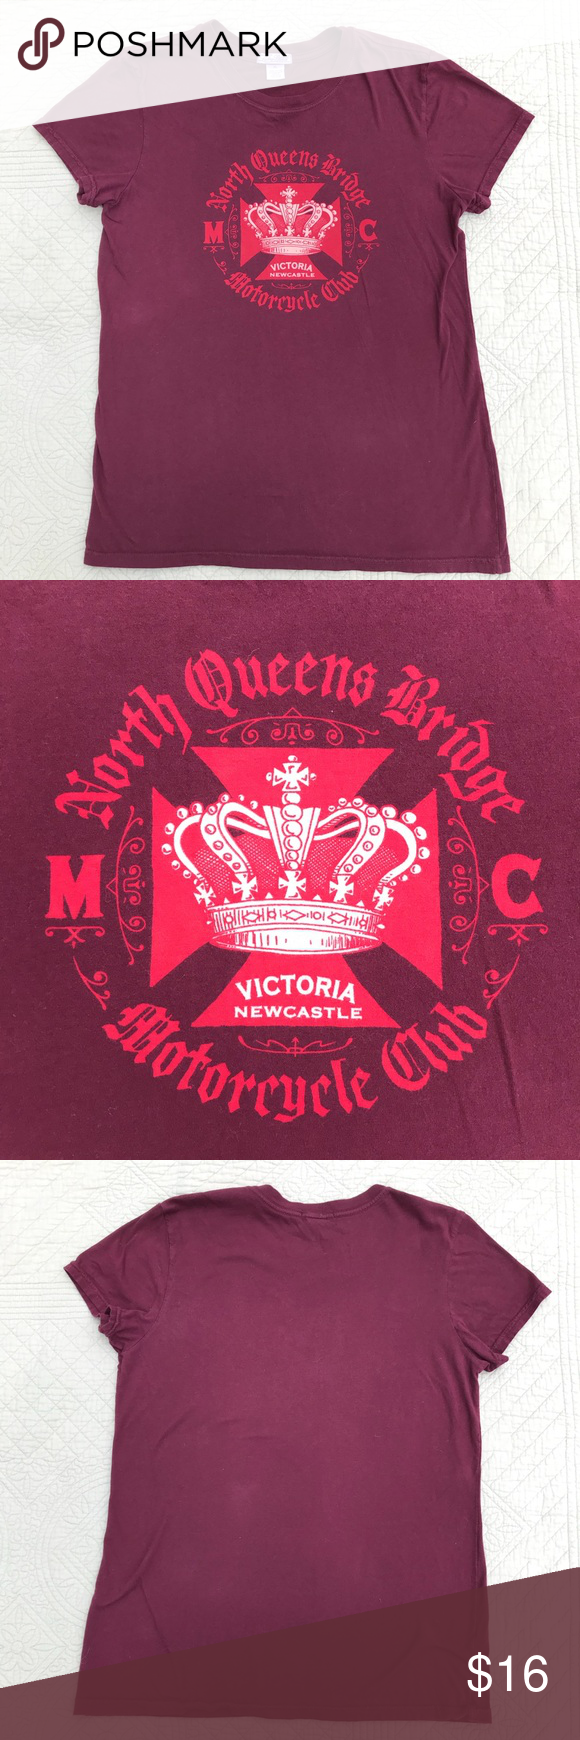 Road Queens MC and Steel Horses MC to host the 2nd Coast 2 ...  |Queens Motorcycle Clubs